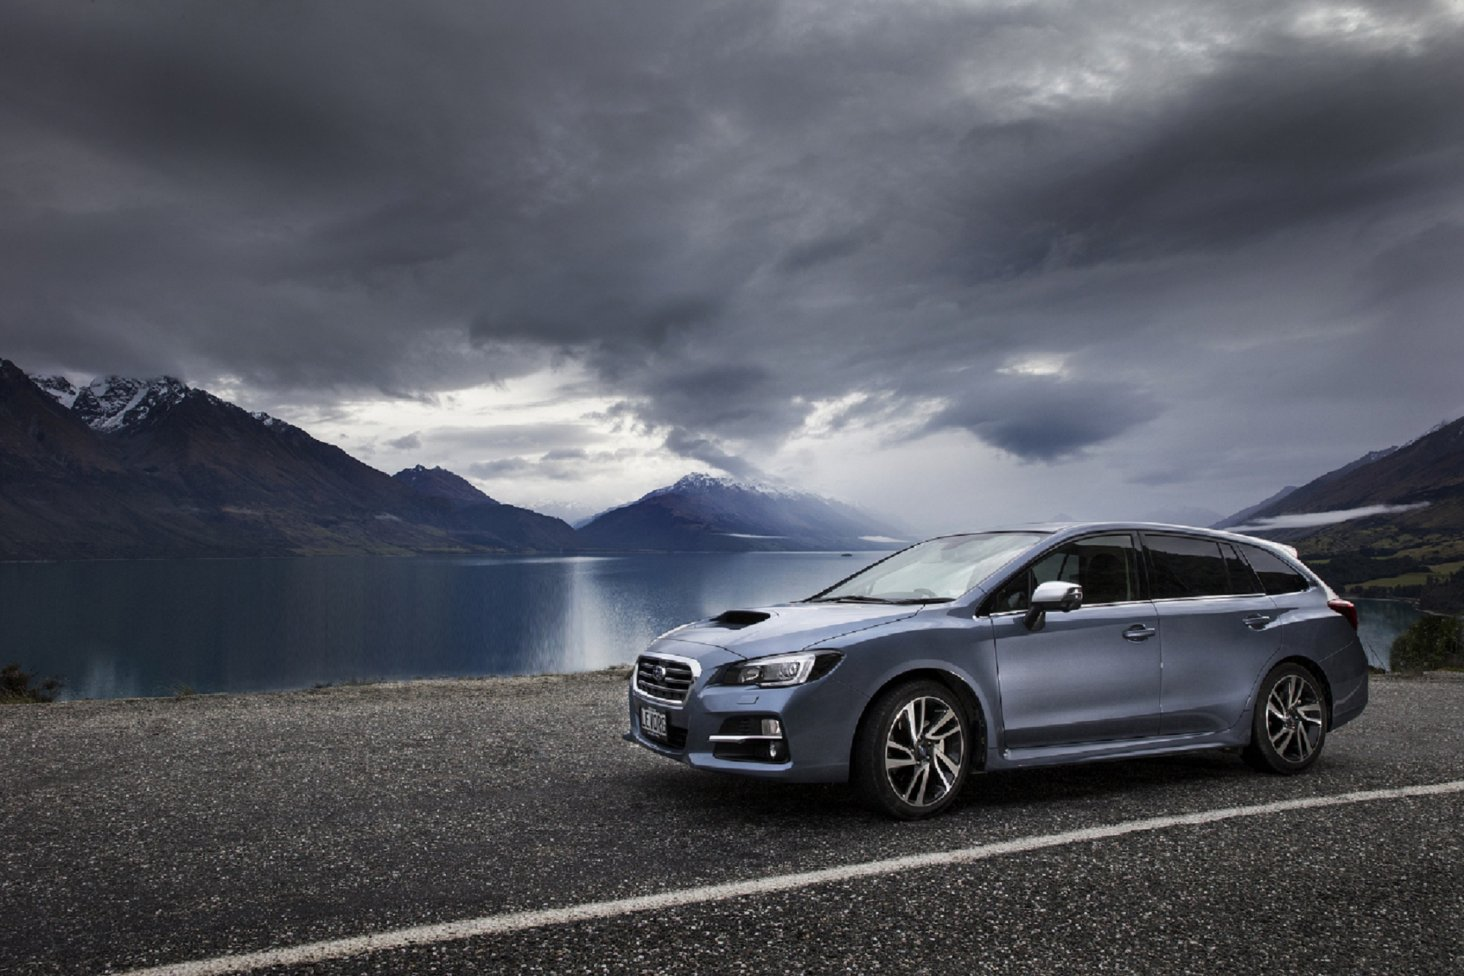 Subaru ambassador Art Green is driving our Subaru Levorg because Subaru believes he is the ideal fit for our stylish sports wagon, which combines substance and sophistication in a turbocharged driving package.